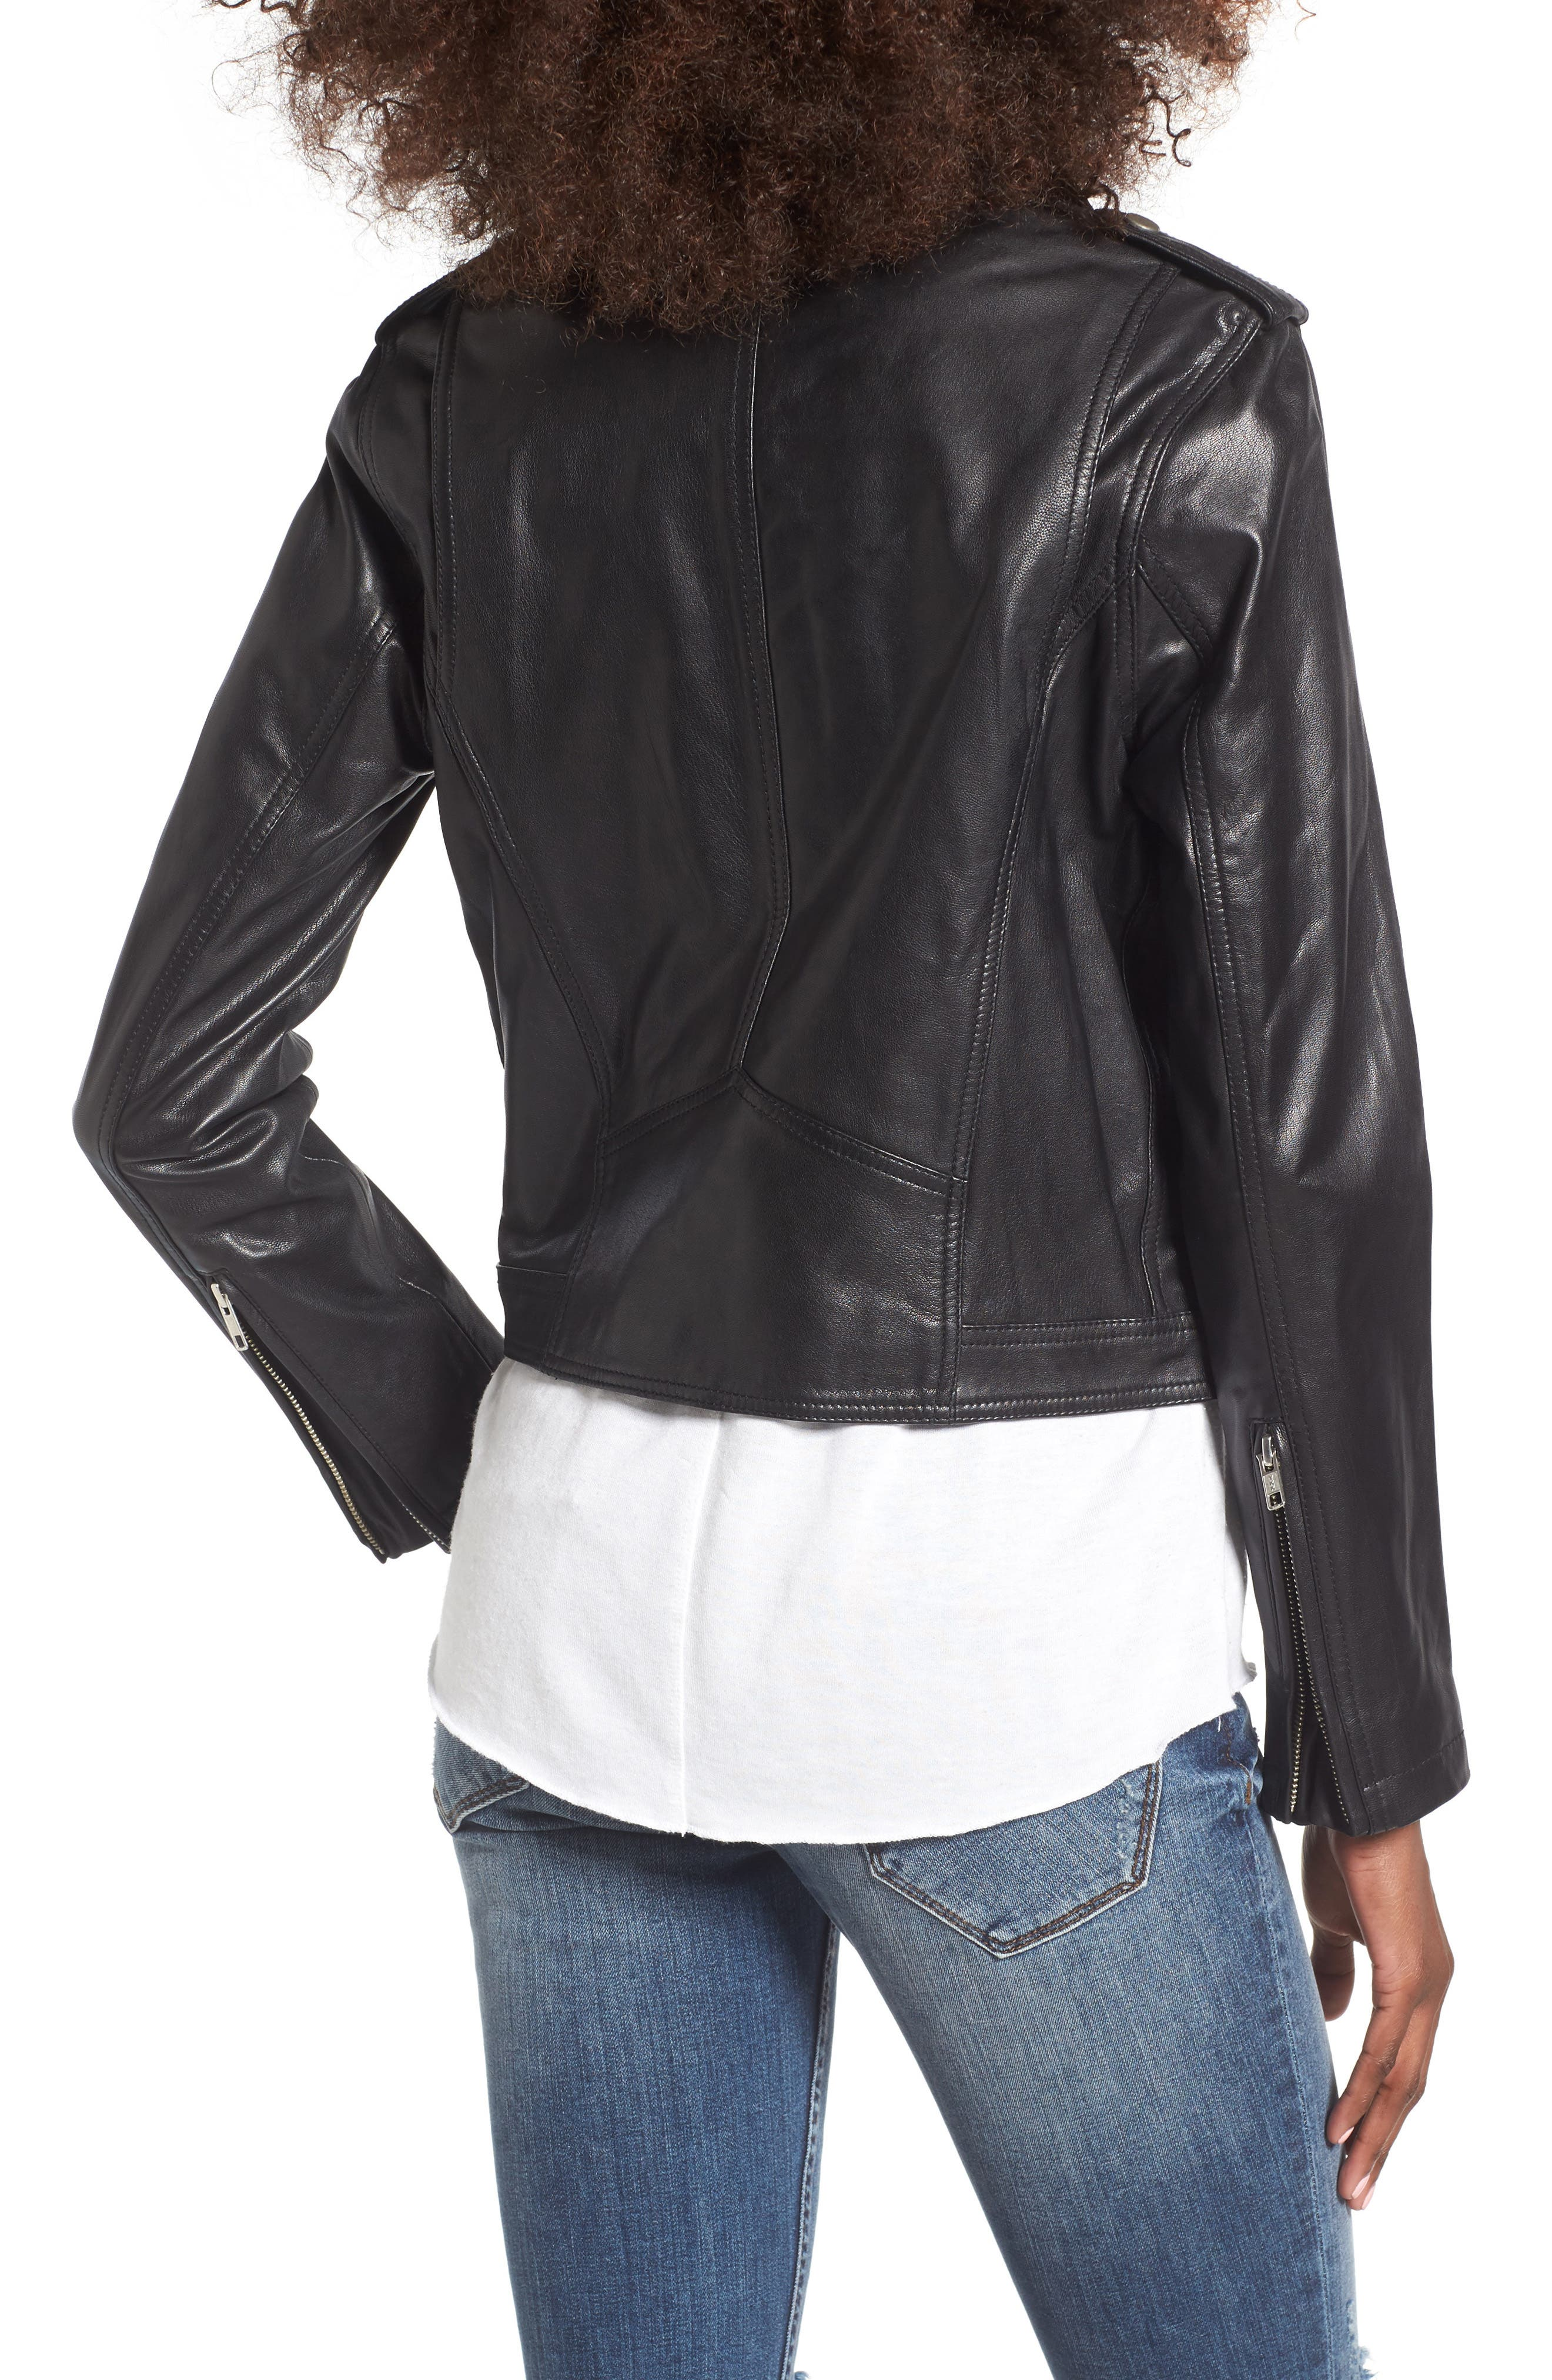 Diablo City Leather Moto Jacket,                             Alternate thumbnail 2, color,                             Black